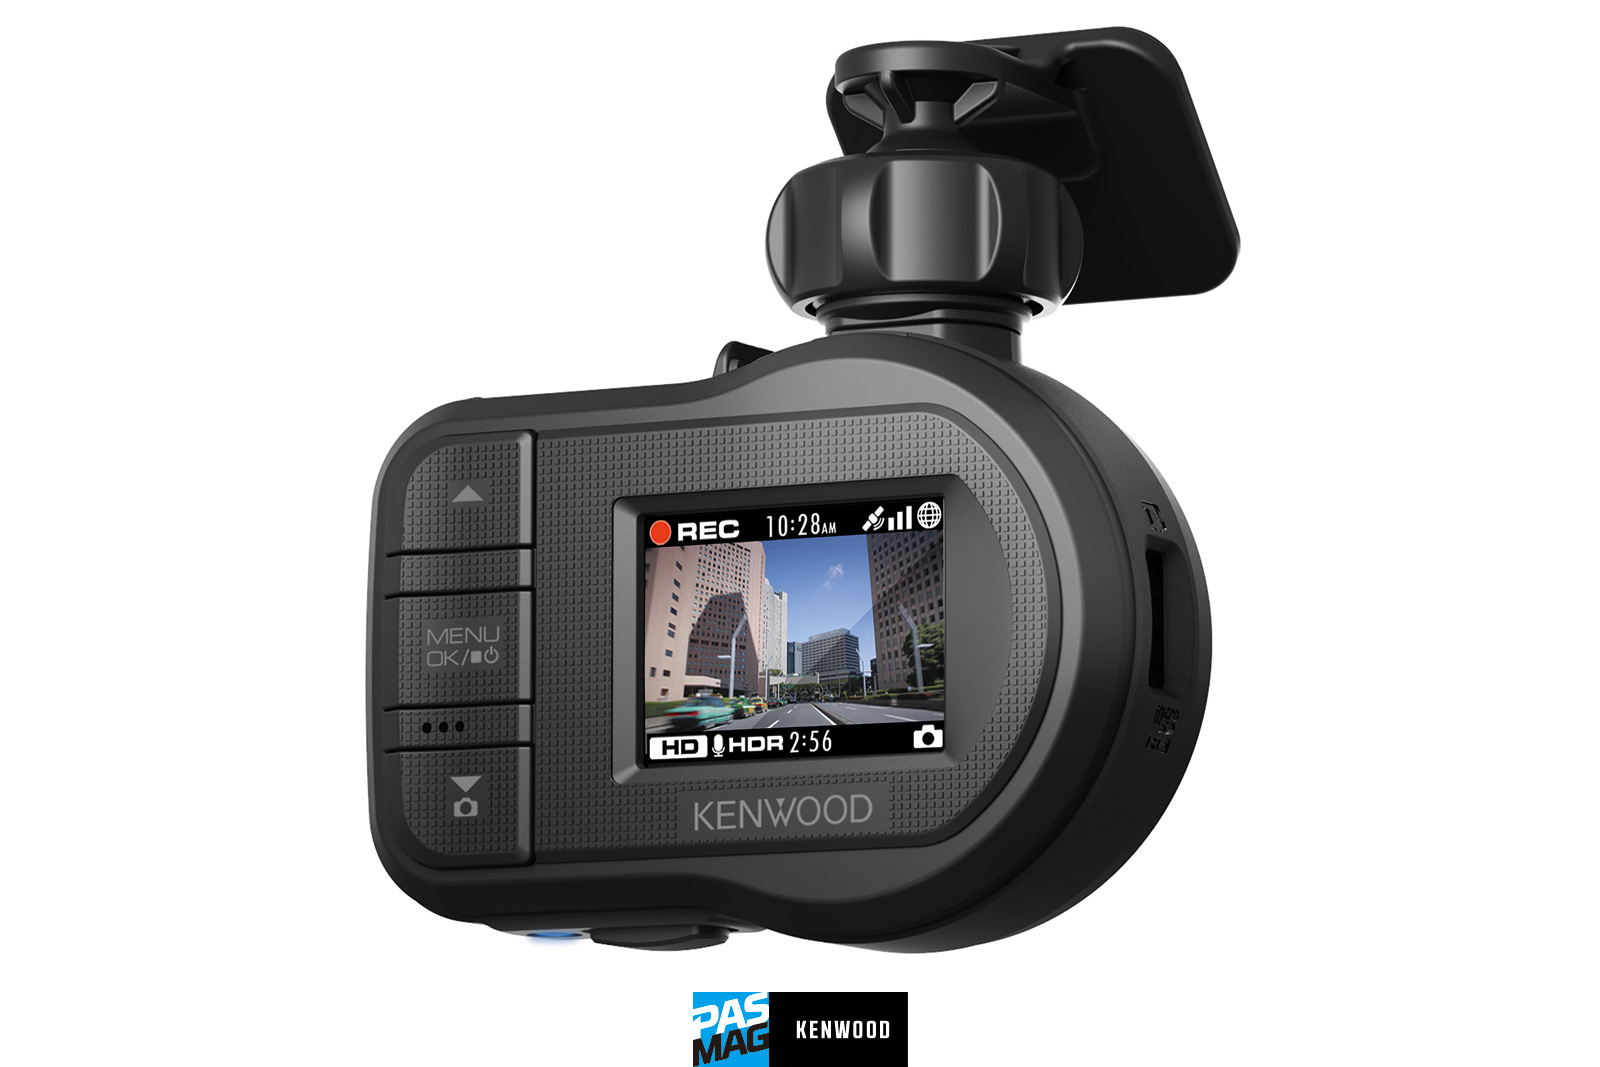 Kenwood DRV 410 Dashboard Camera PAS 03